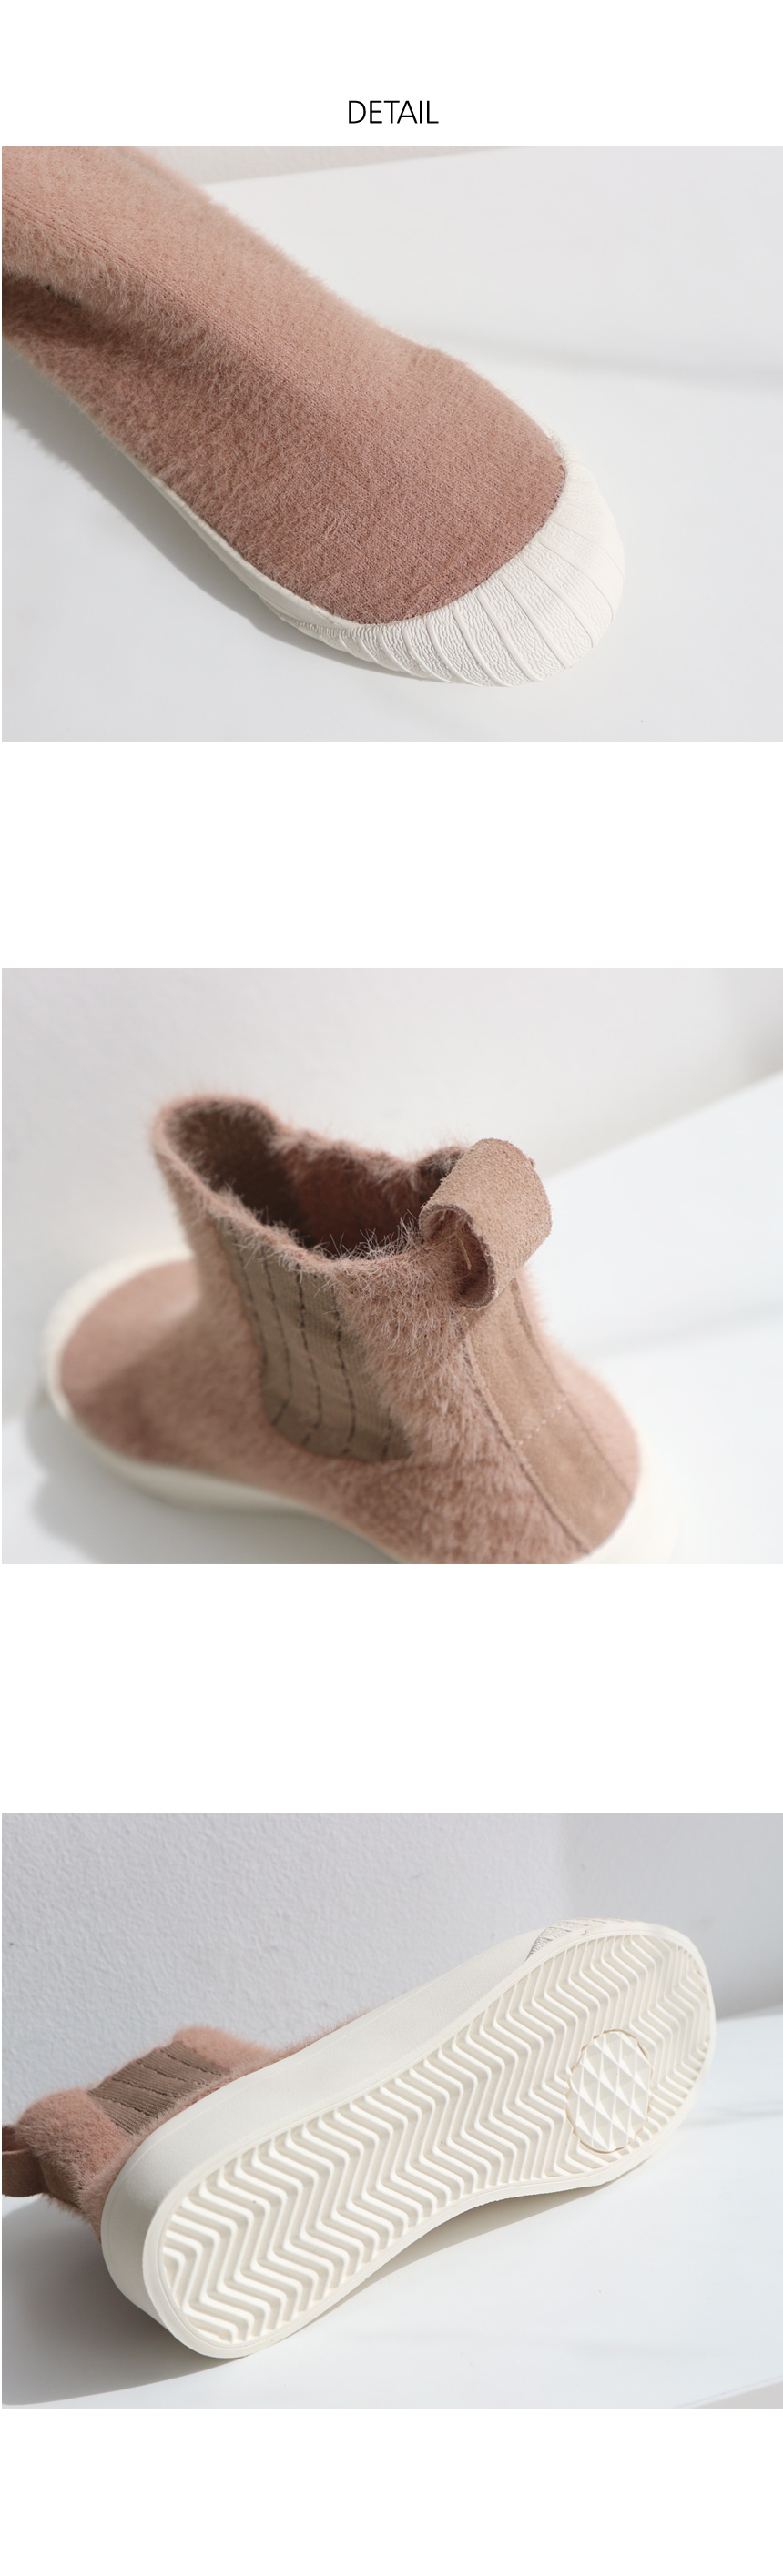 Smooth Banding Ankle Slip-on